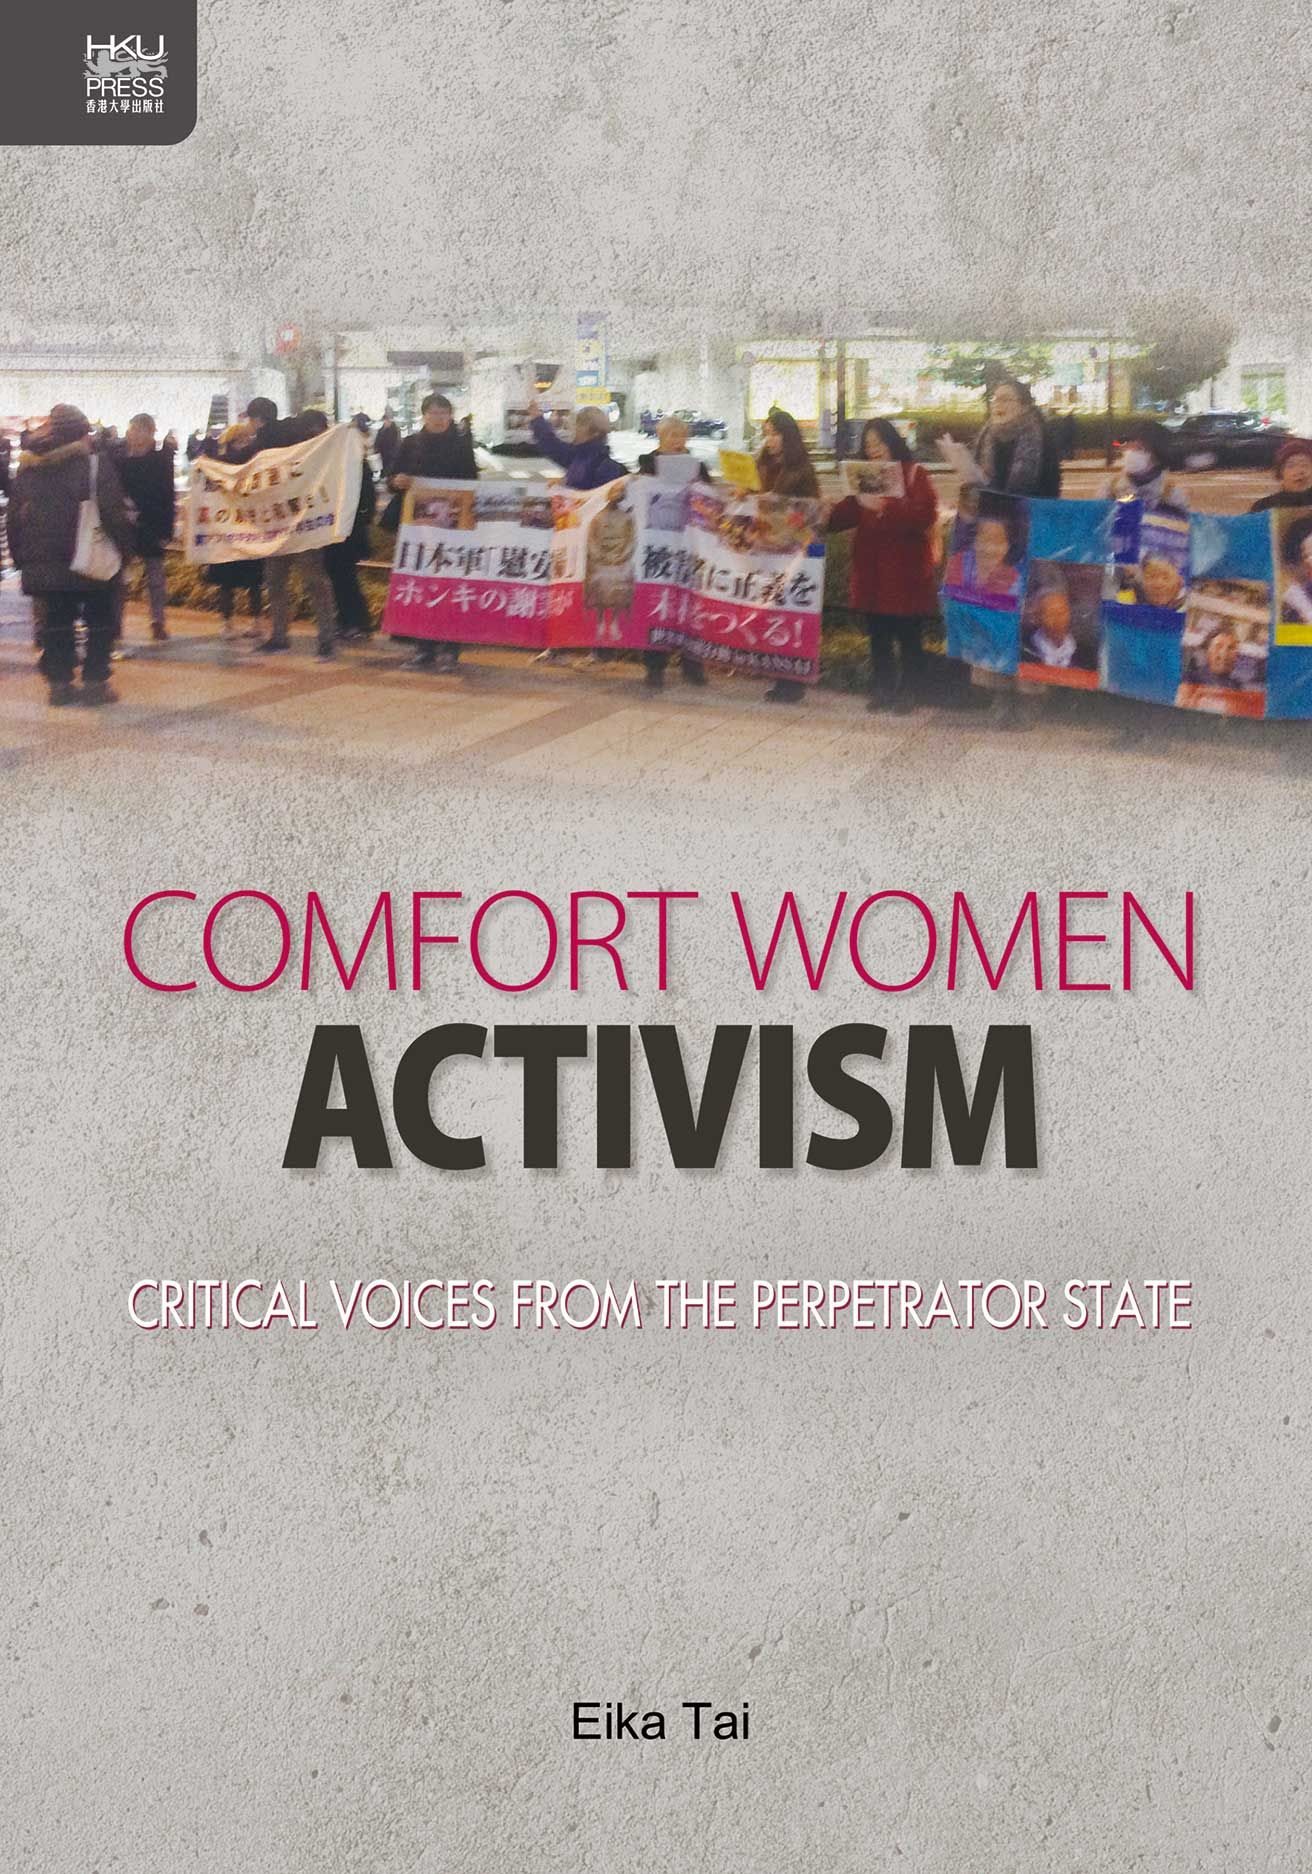 Comfort Women Activism: Critical Voices from the Perpetrator State